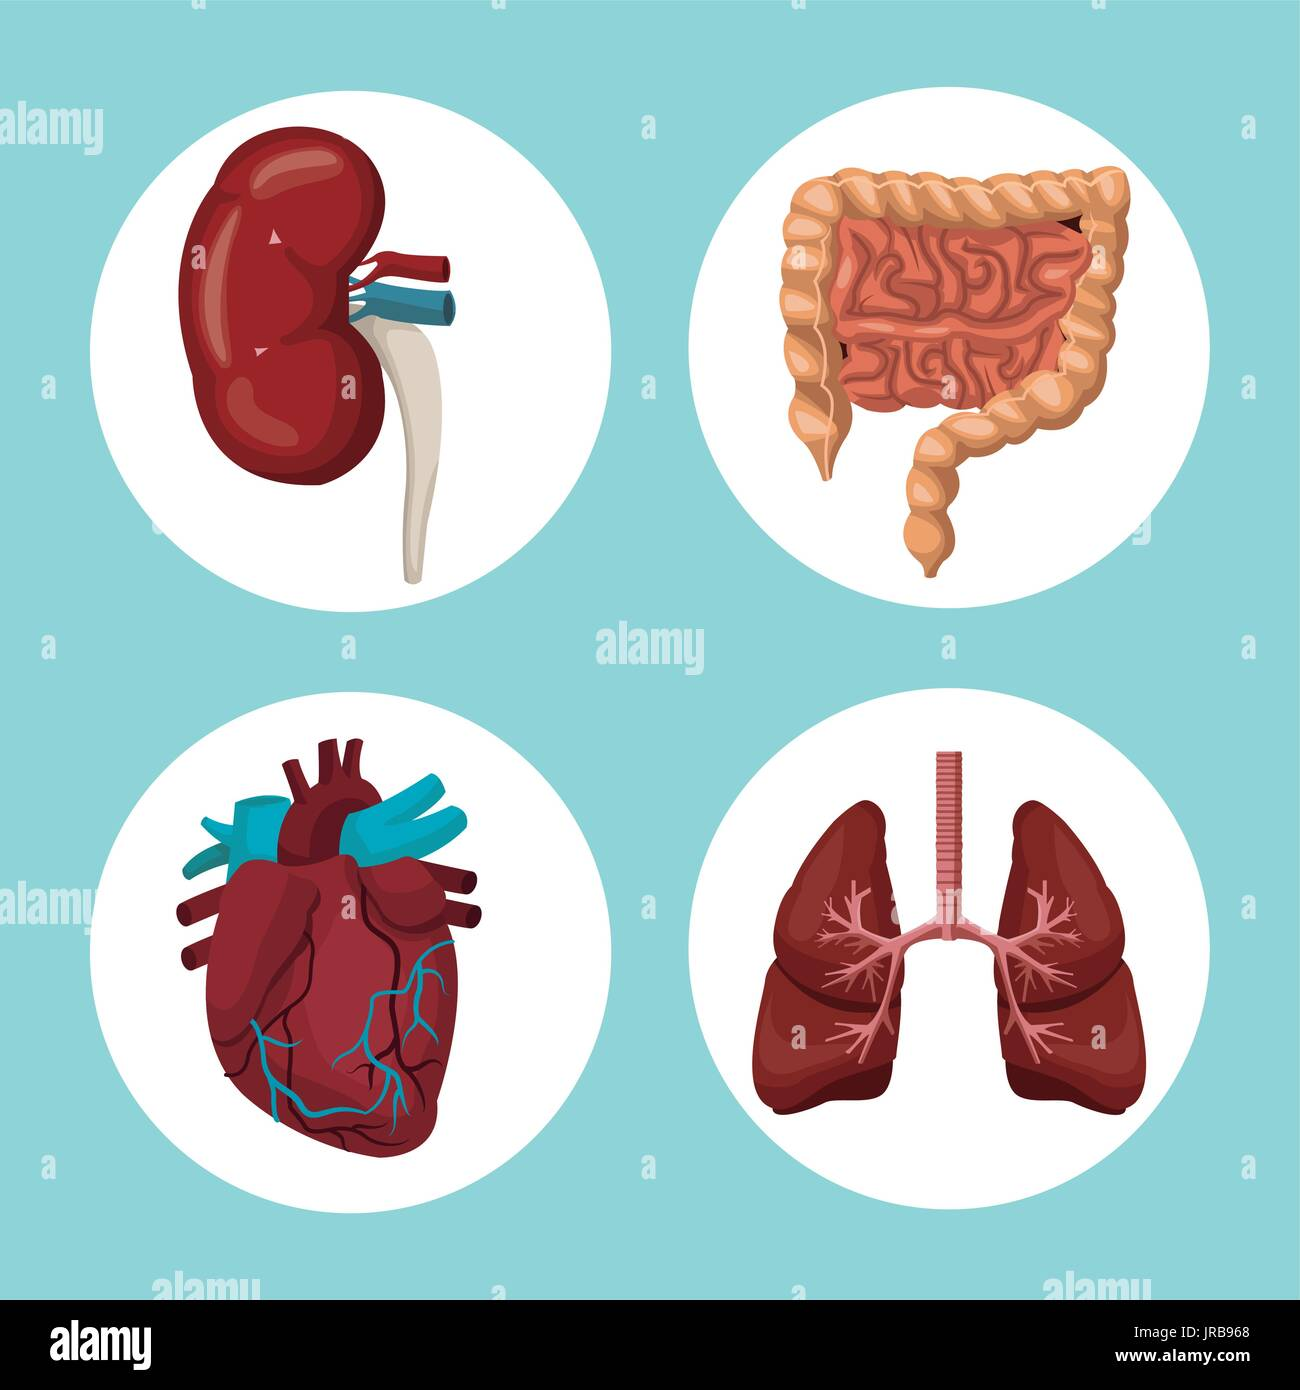 color background with circular frames of human body organs - Stock Image